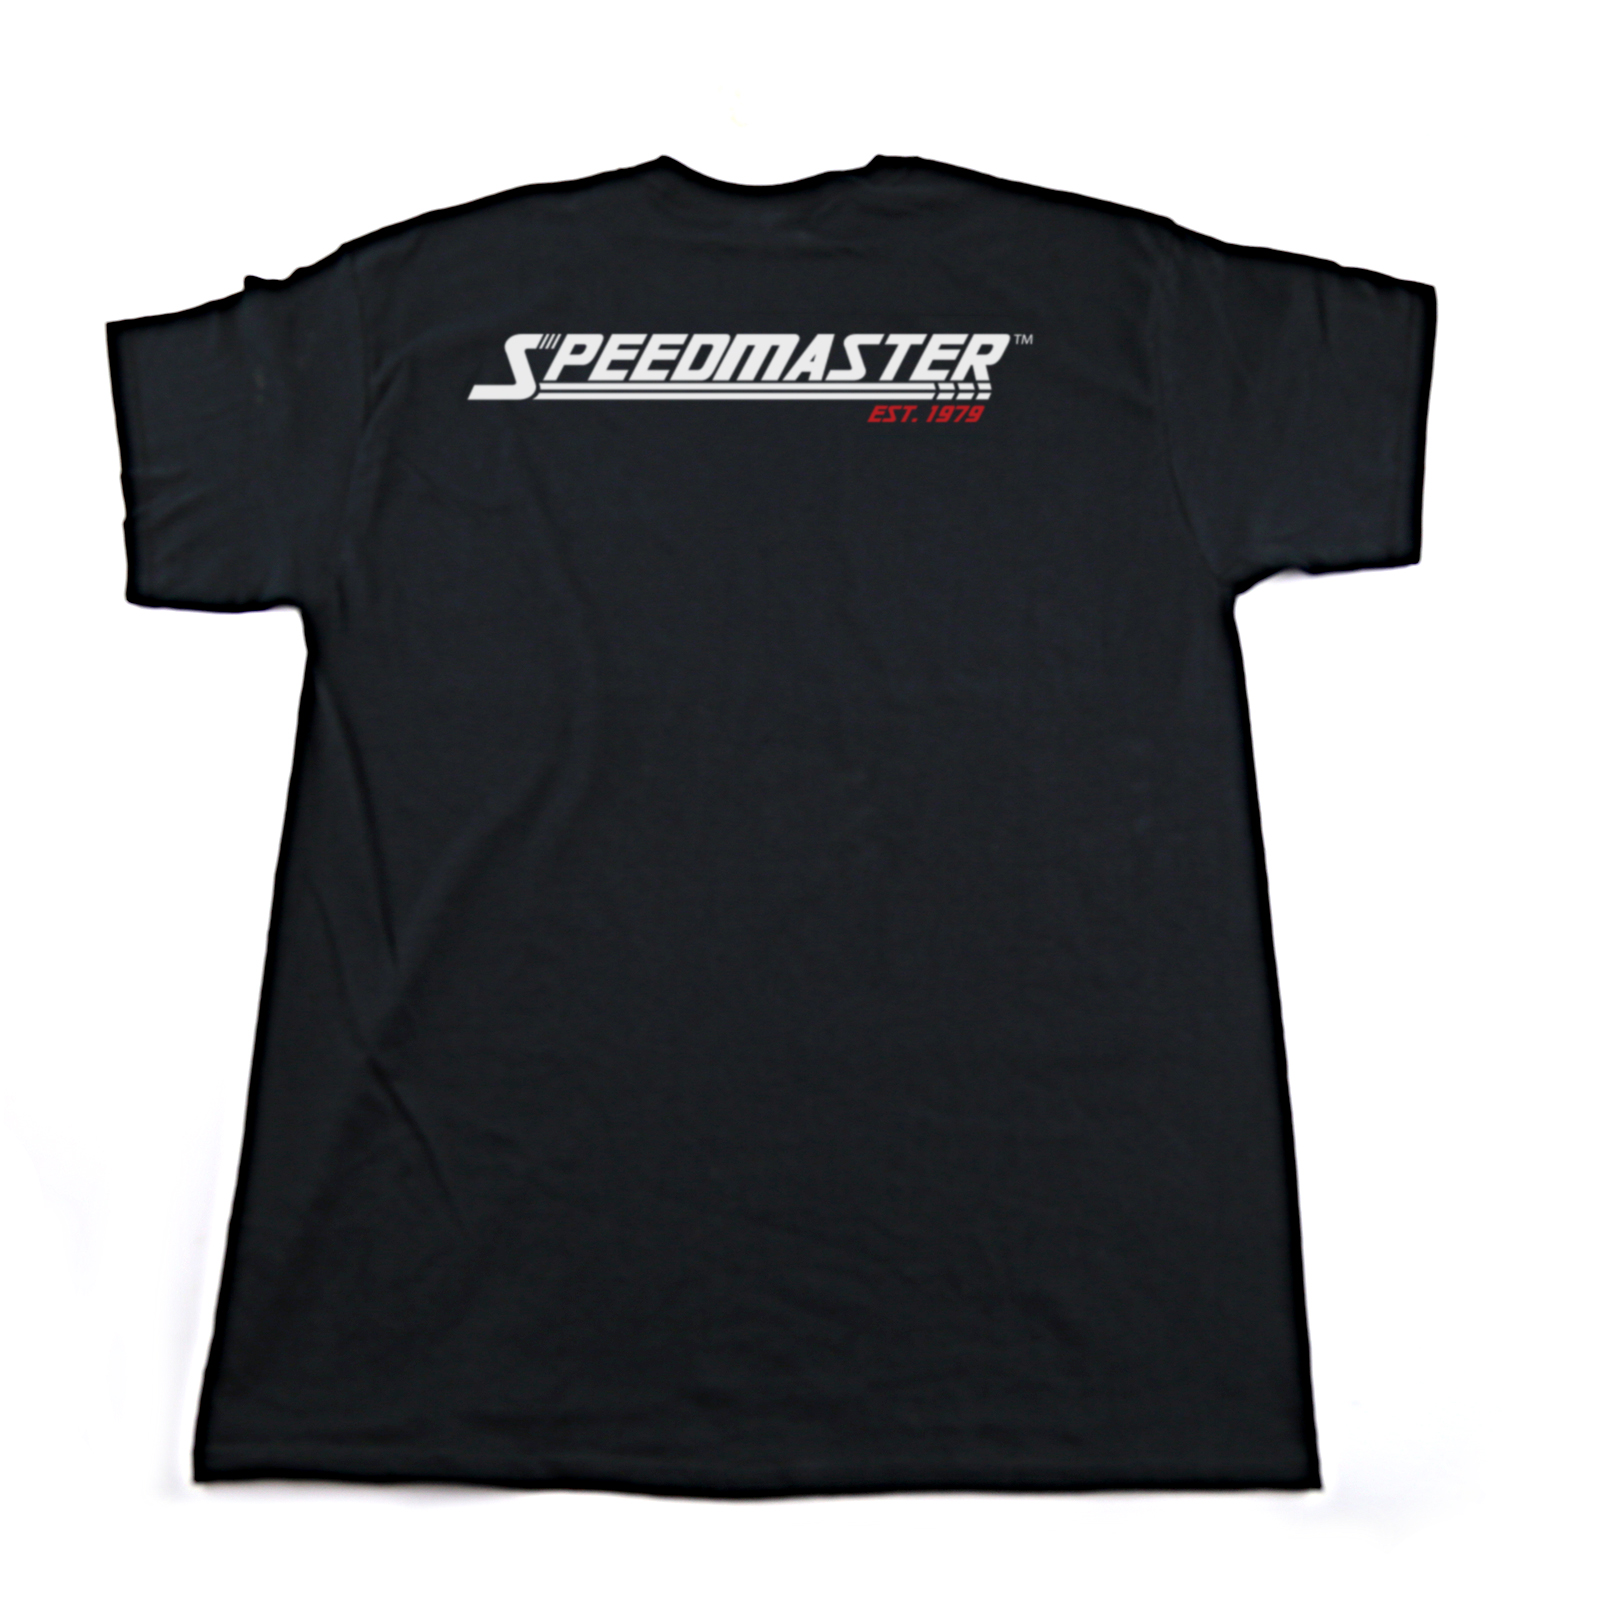 Speedmaster Black Cotton T-Shirt - SMALL S